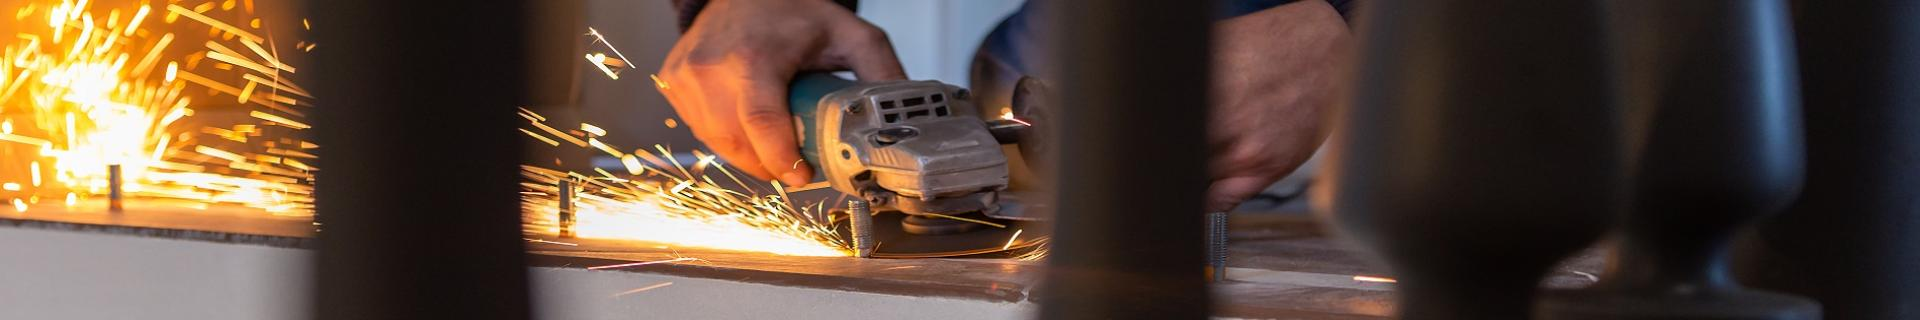 Hand and Power Tool Safety – Vivid